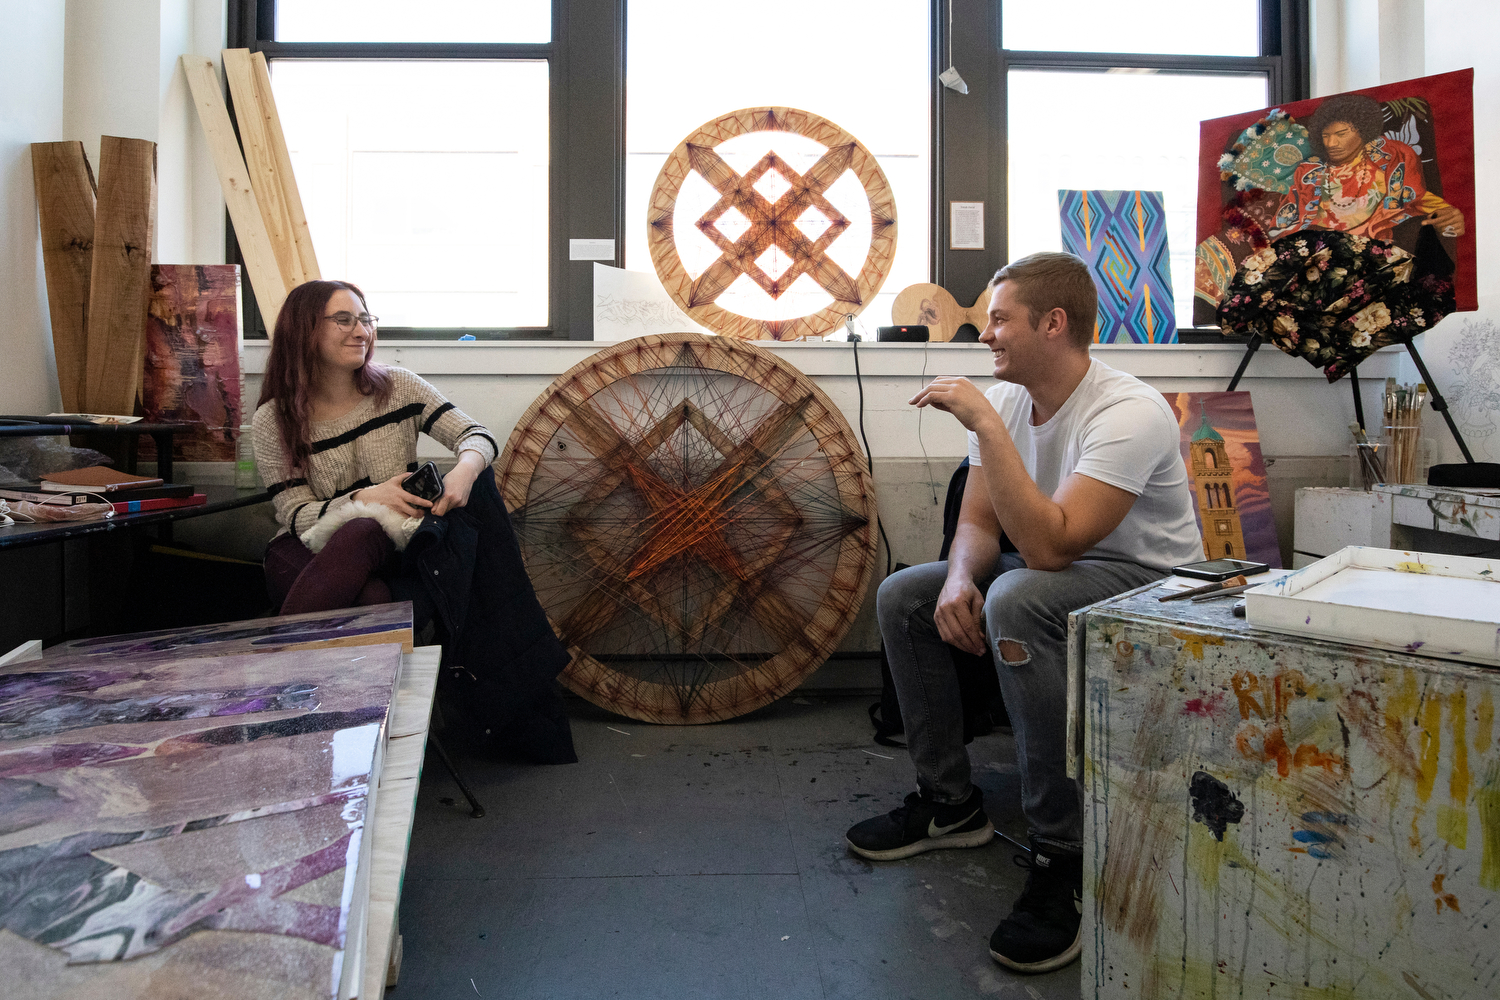 Alicia Meyer (CADA '20) and Josiah David (CADA '20) chat in the BFA thesis studio in Art and Design Hall as they wait for one-on-one studio visits from professors during their thesis course.